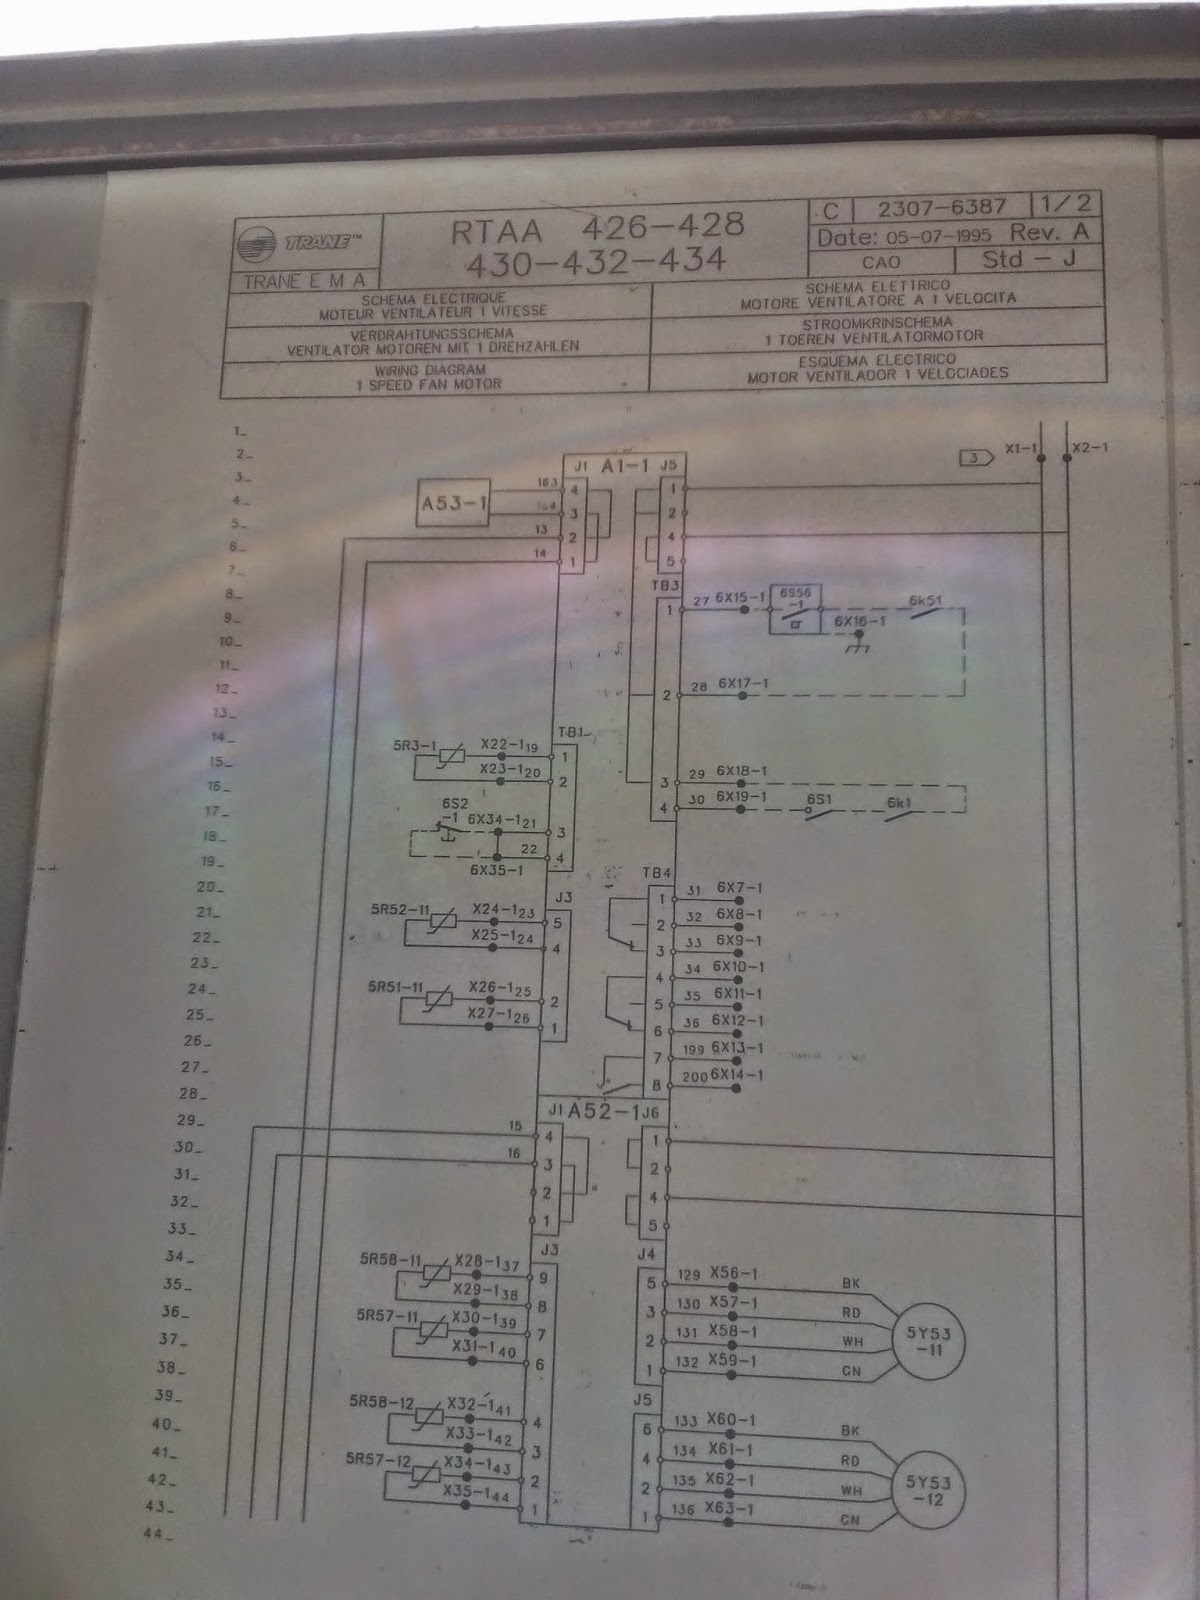 trane chiller air cooled control wiring diagram rtaa series [ 1200 x 1600 Pixel ]